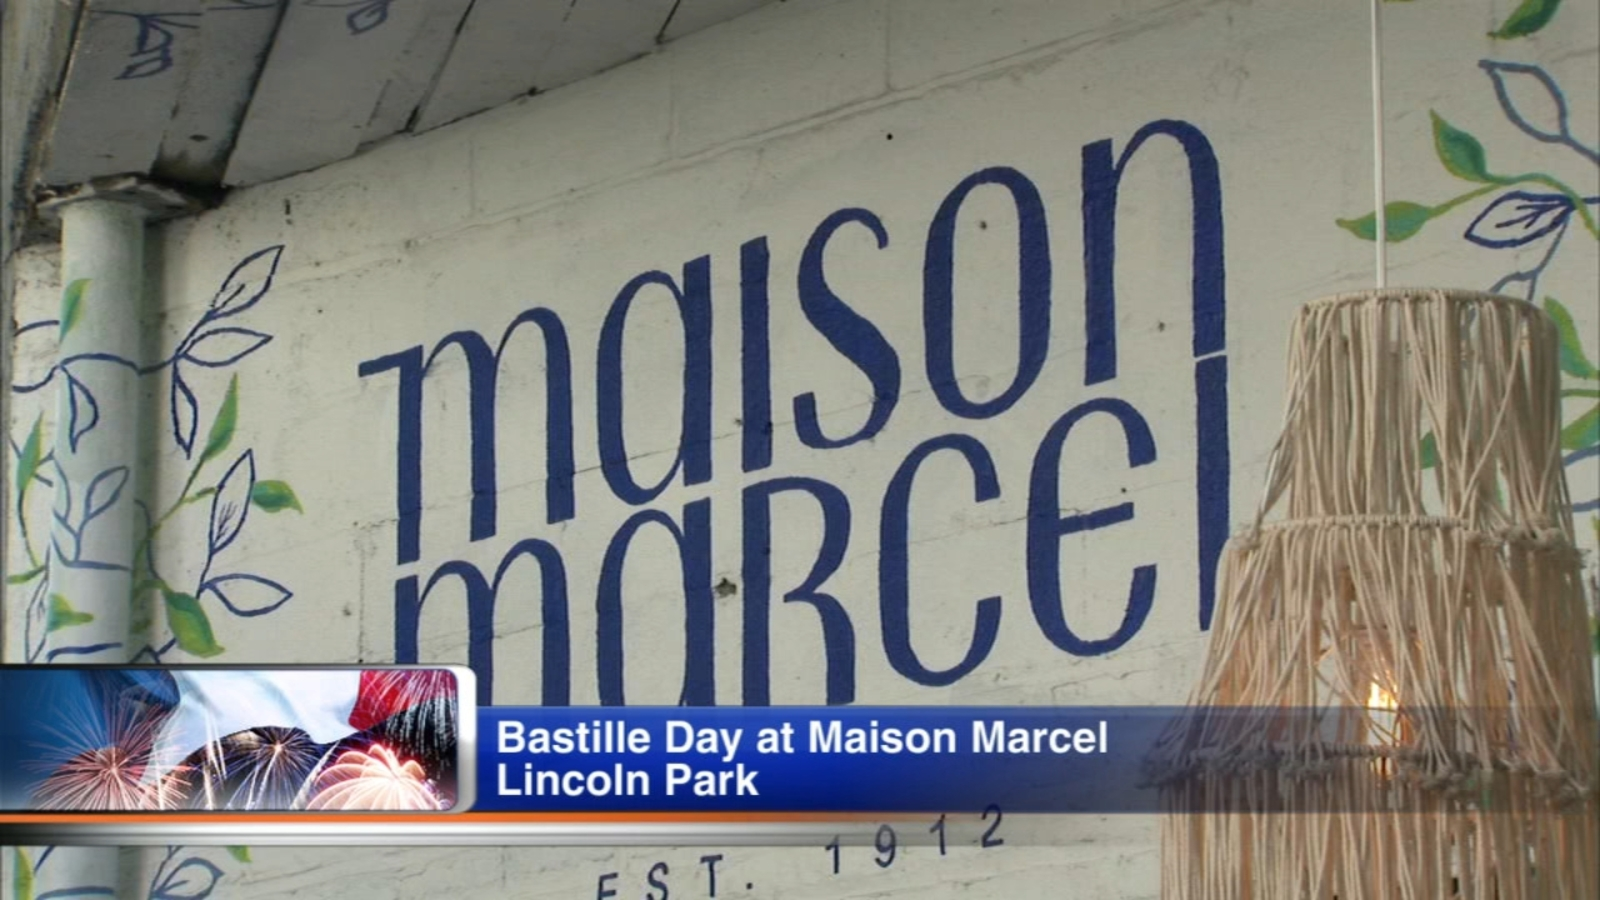 Authentic French bakery Maison Marcel hosting Bastille Day Special